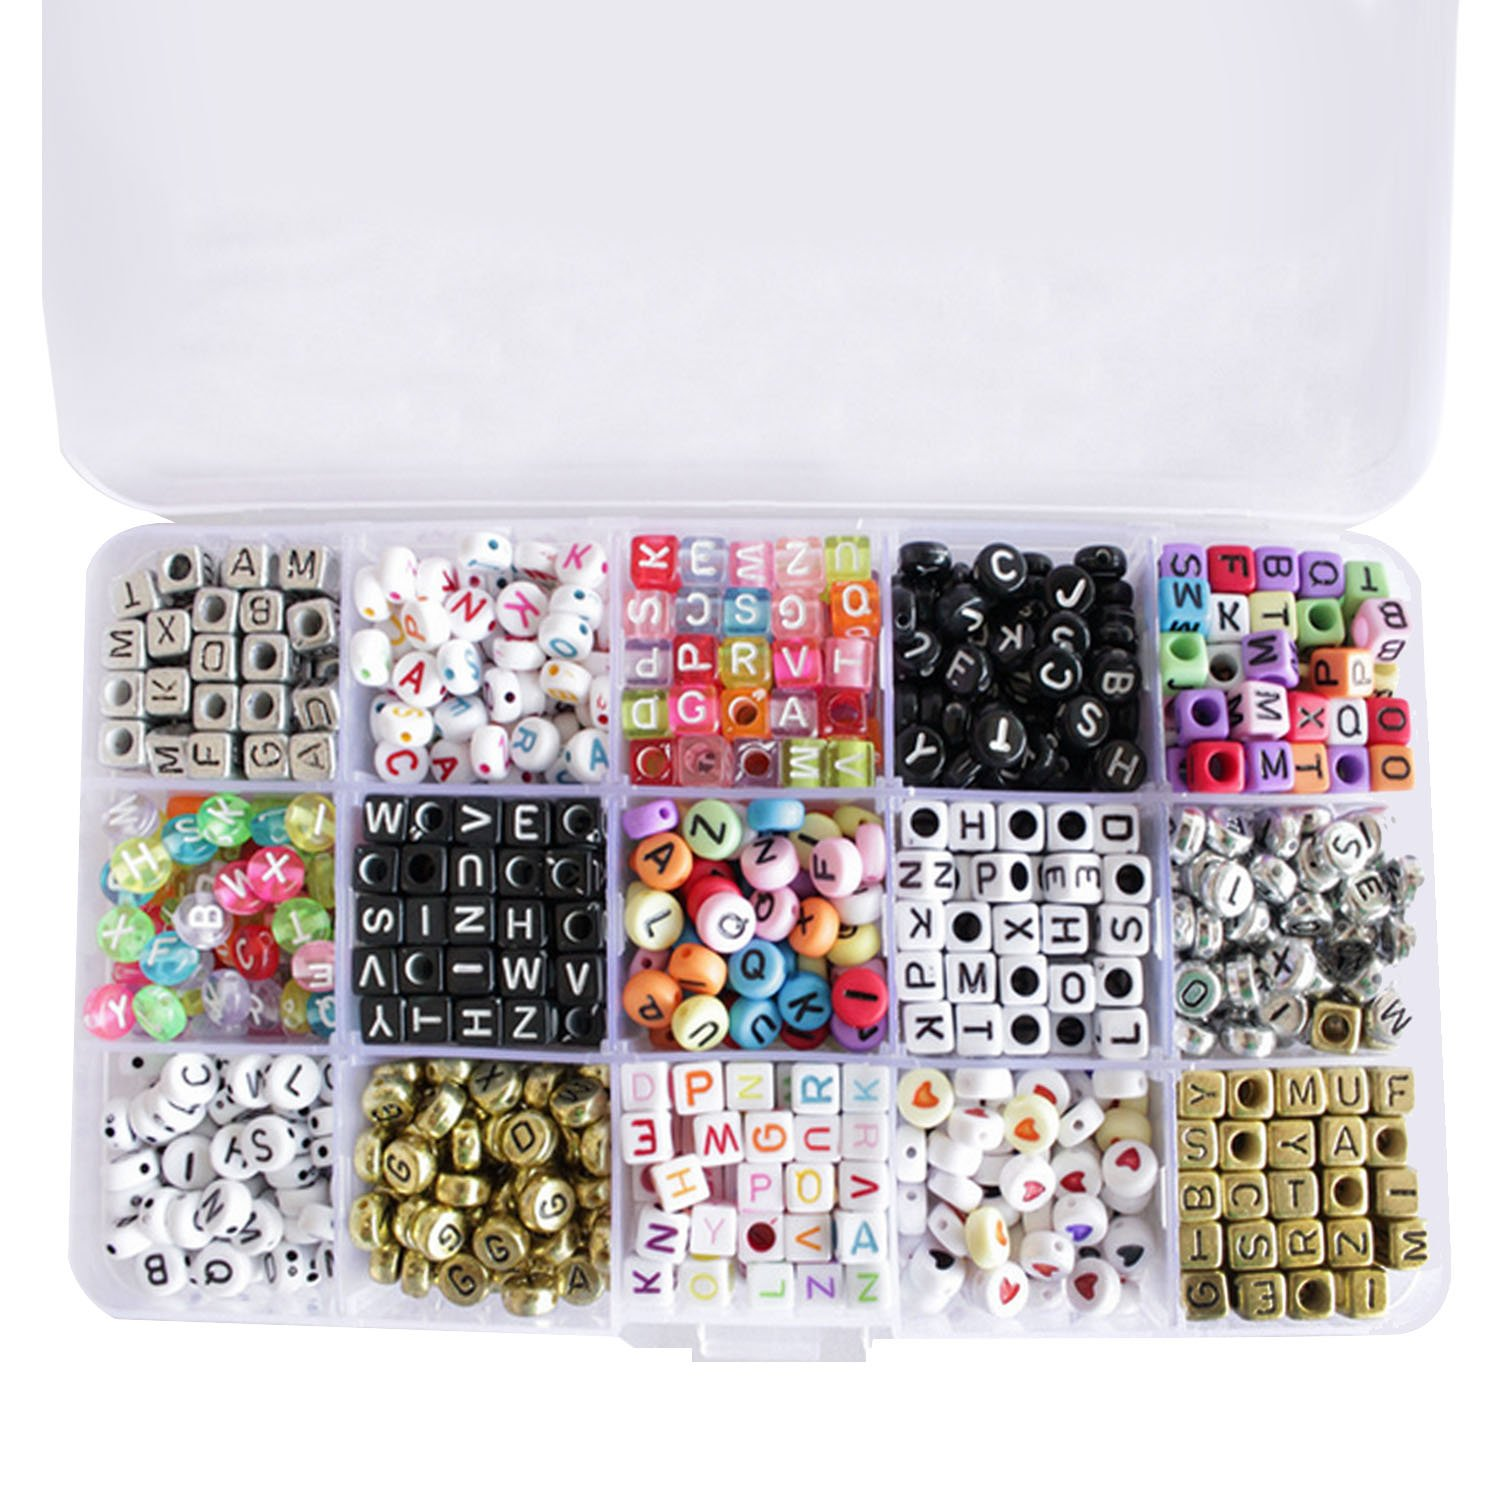 1100 PCS Assorted Color Cube And Round Alphabet Letter Beads with Colorful Letters for DIY Bracelets Necklaces Jewelry Craft Project 15 Styles Gosear